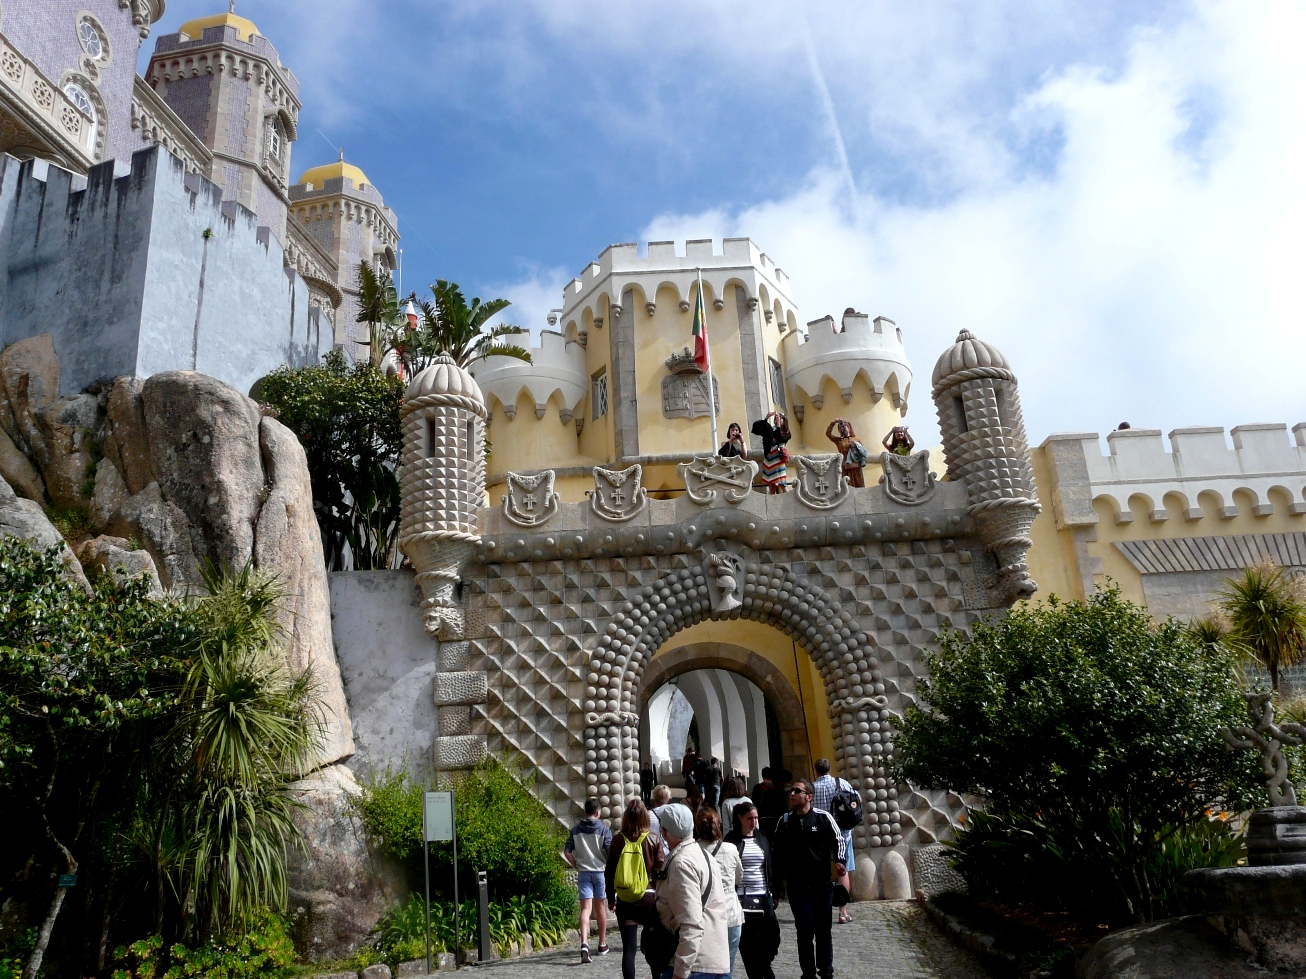 Picture 4, Pena Palace, Sintra, Portugal